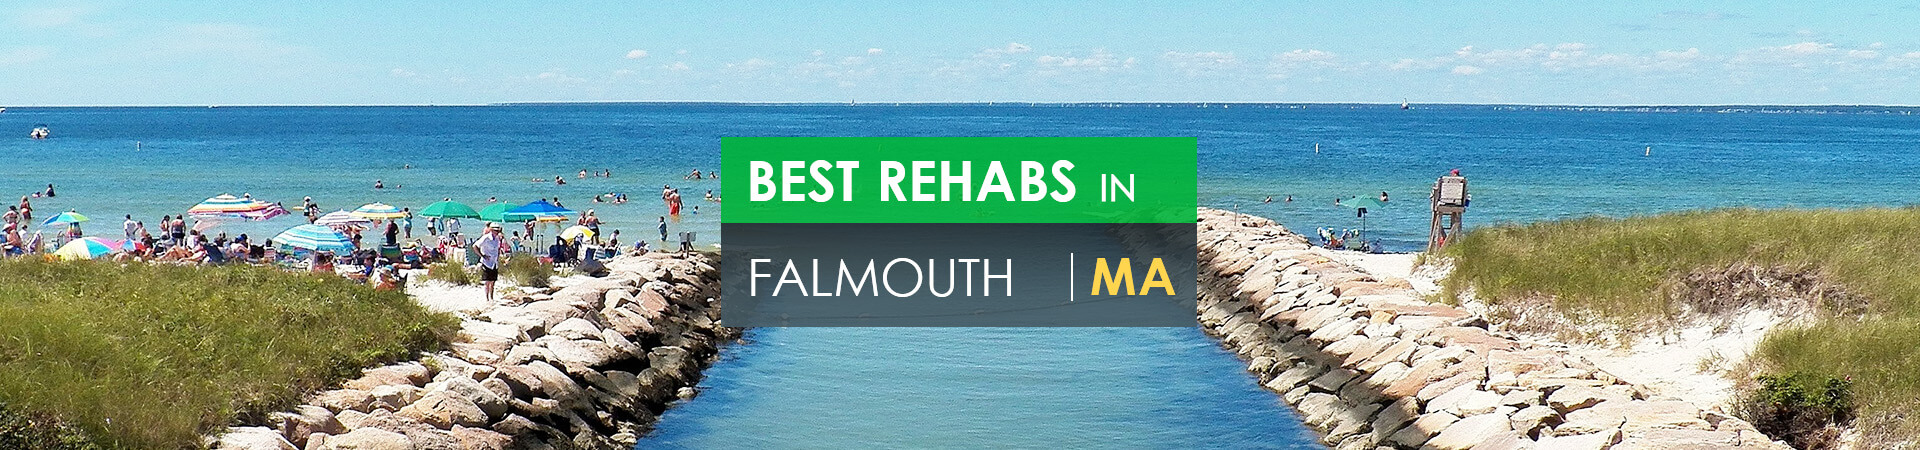 Best rehabs in Falmouth, MA